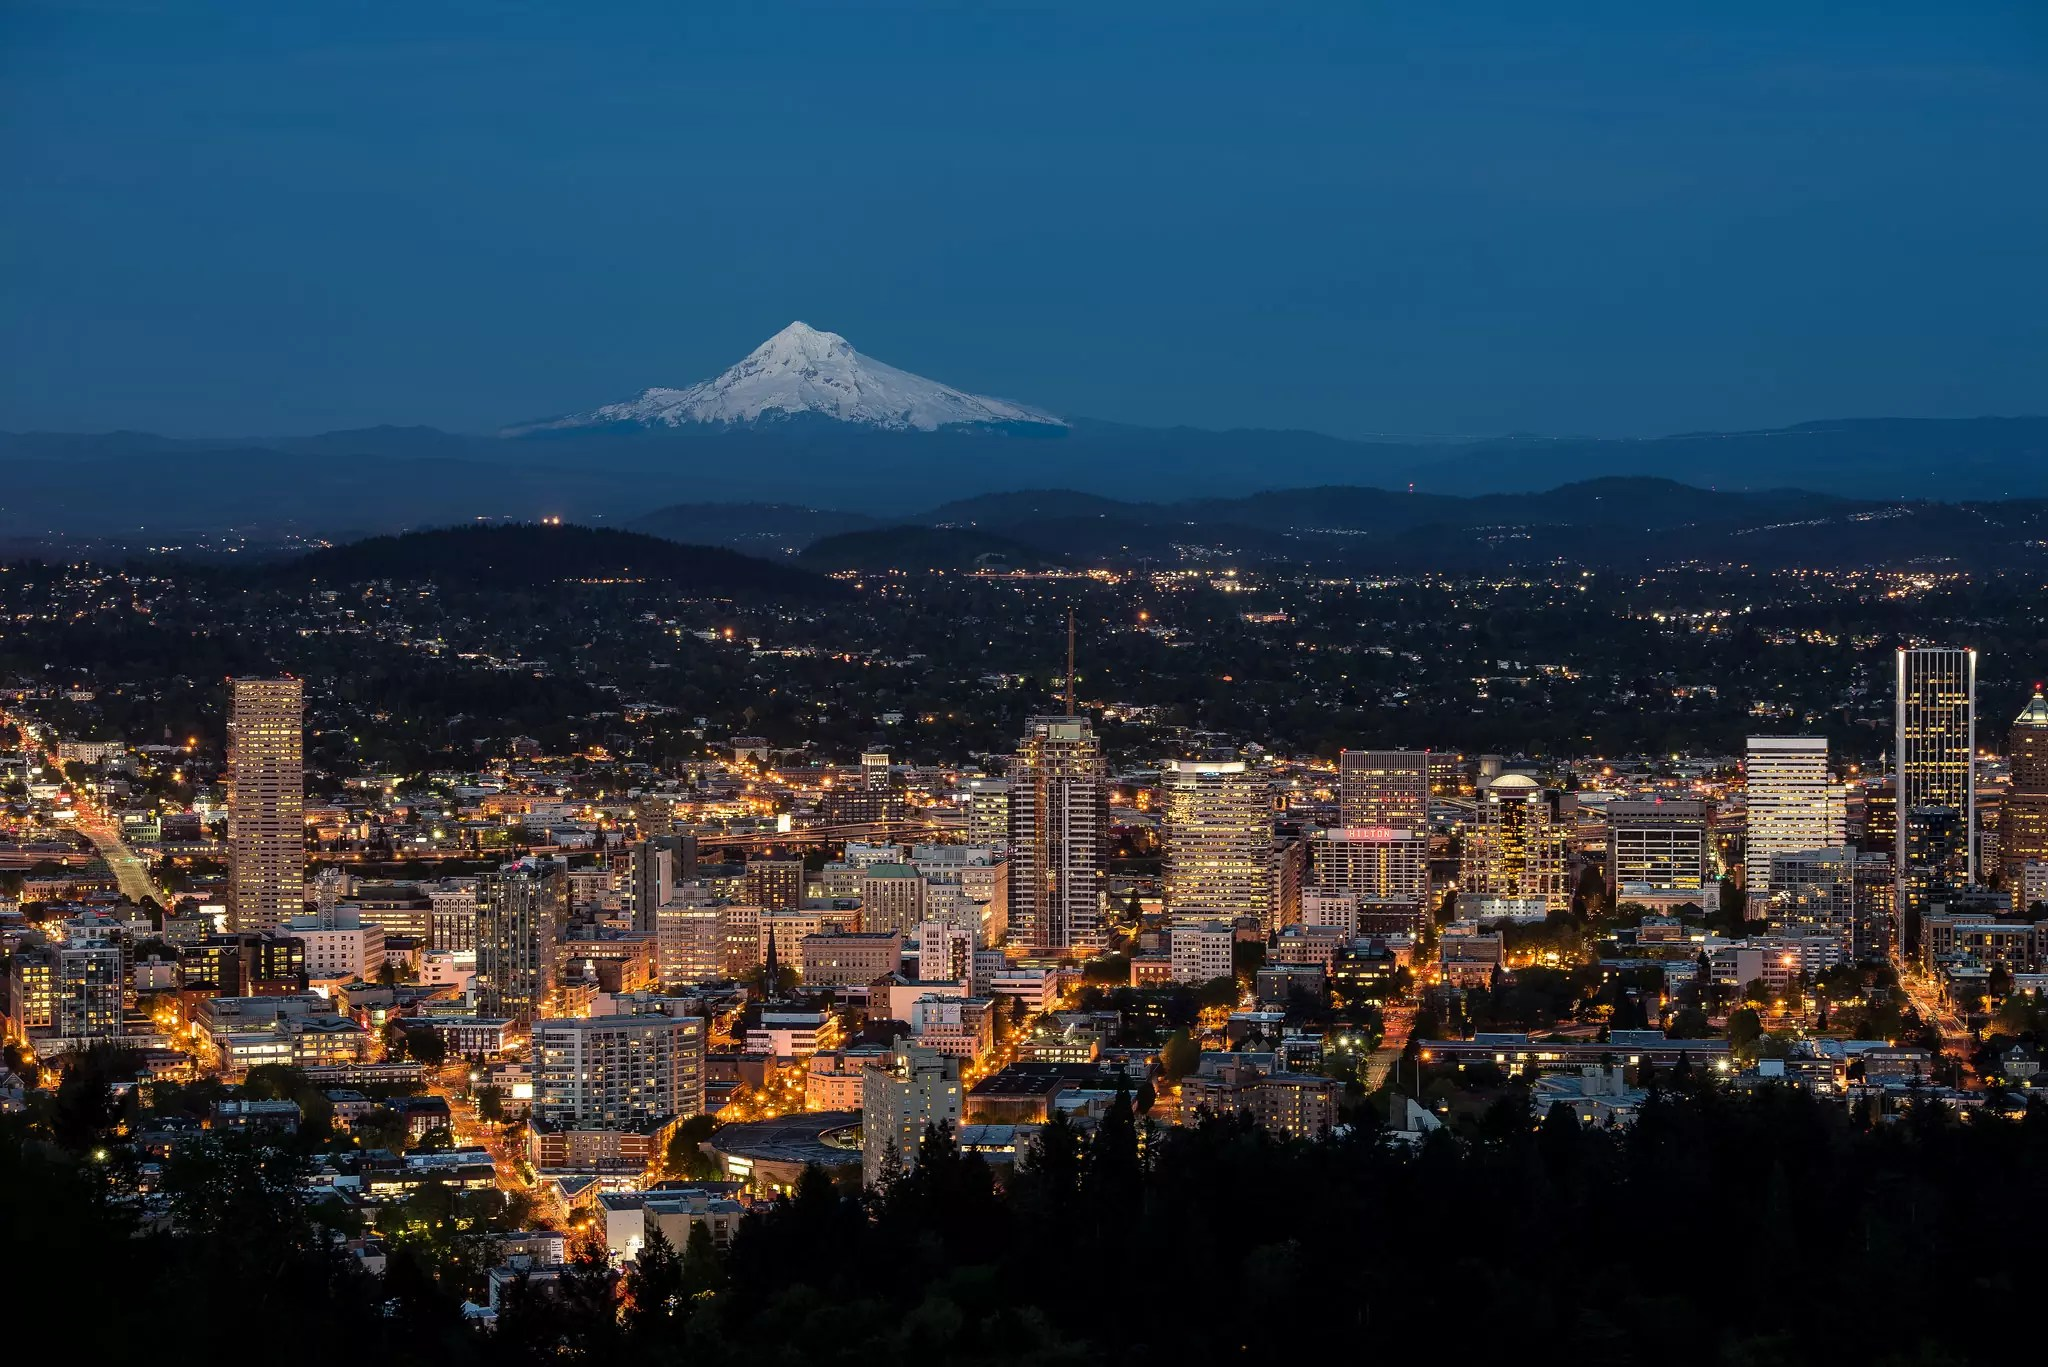 Portland, Oregon skyline at sunset from Pittock Mansion - photo by Jeff Hintzman under CC BY-ND 2.0